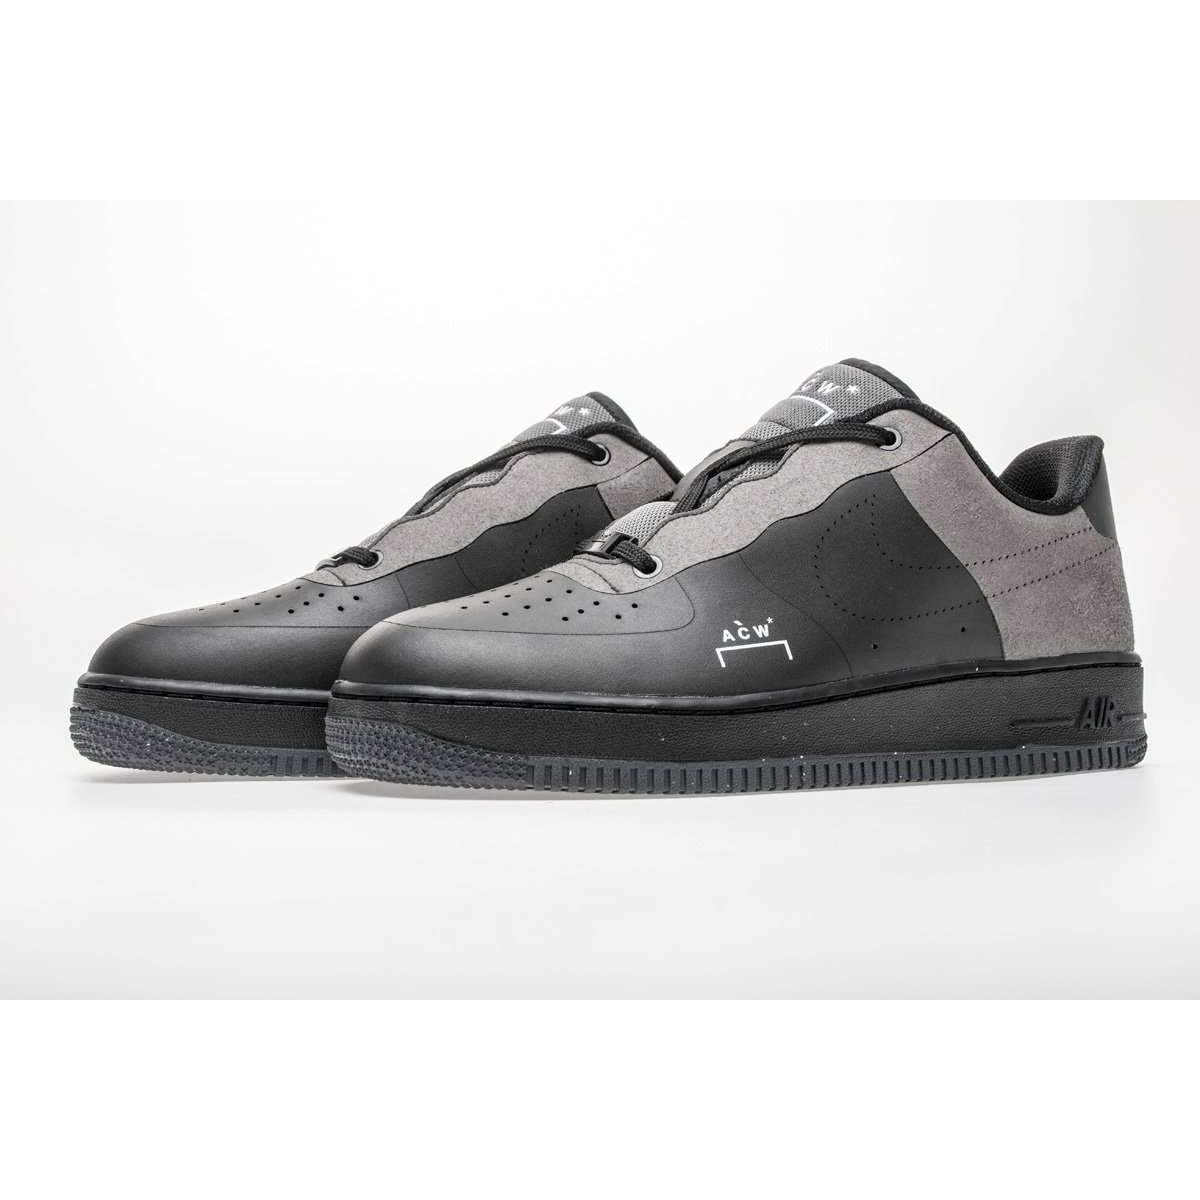 "A COLD WALL* x Nike Air Force 1 Low ""Black Grey"" </p>                     </div> 		  <!--bof Product URL --> 										<!--eof Product URL --> 					<!--bof Quantity Discounts table --> 											<!--eof Quantity Discounts table --> 				</div> 				                       			</dd> 						<dt class="